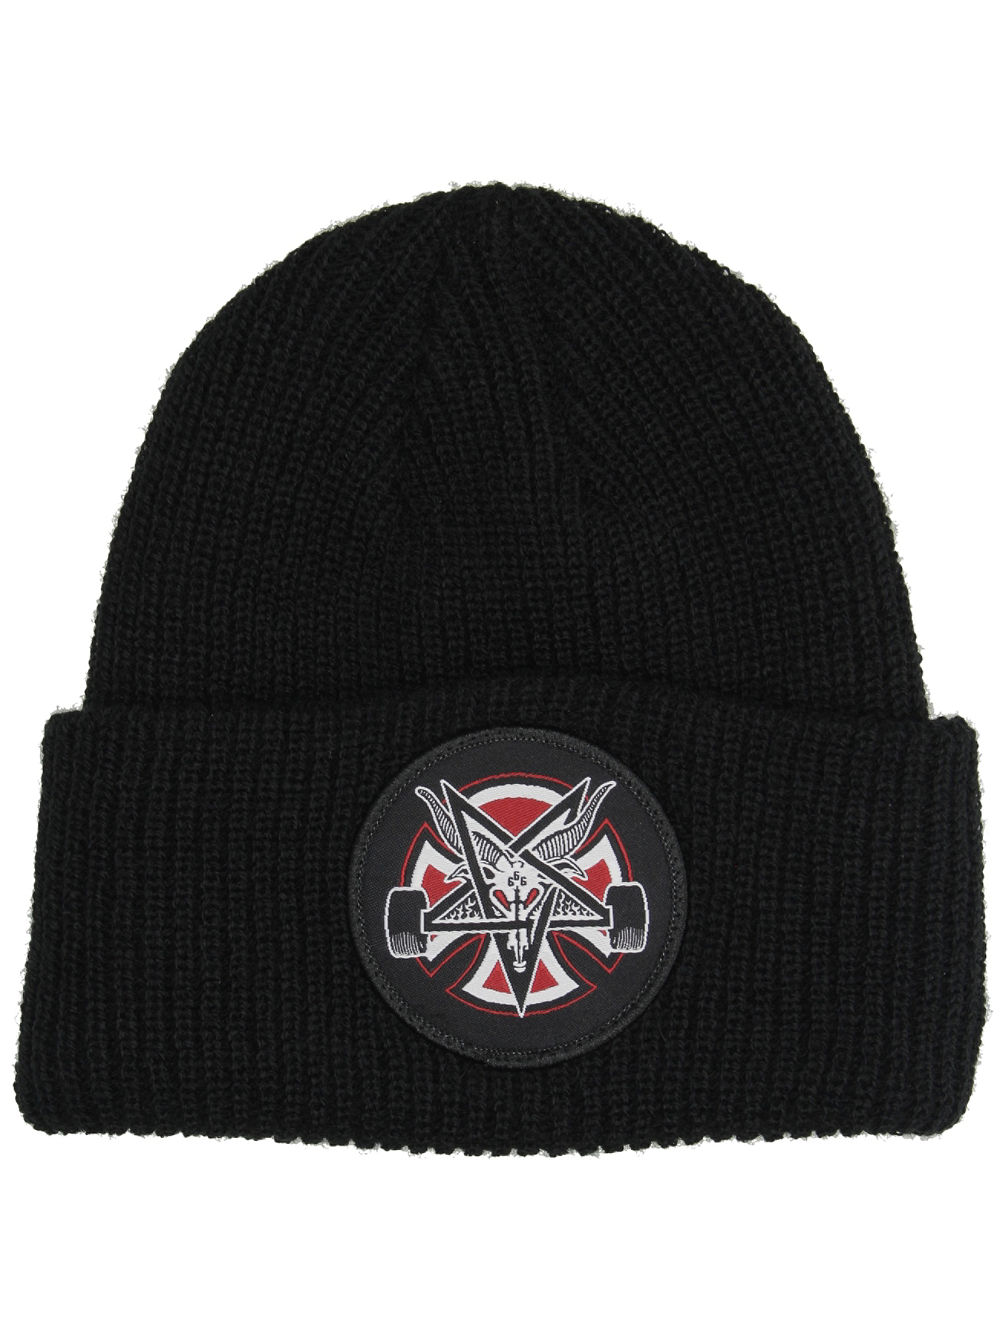 X Thrasher Pentagram Cross Beanie